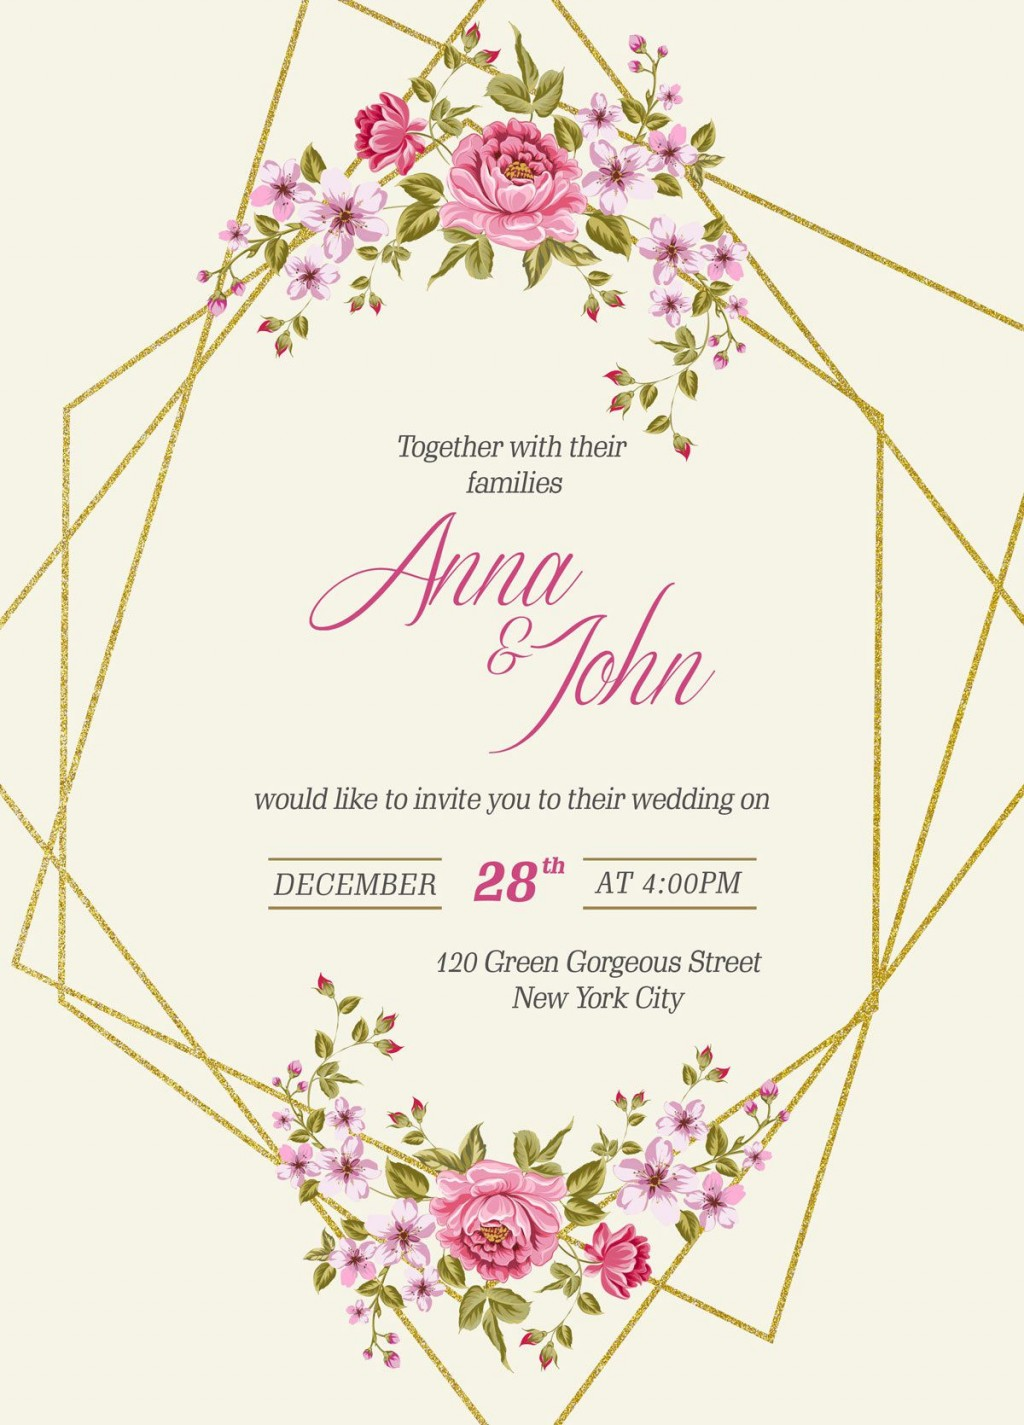 007 Outstanding Free Download Invitation Card Template Psd Image  Indian WeddingLarge